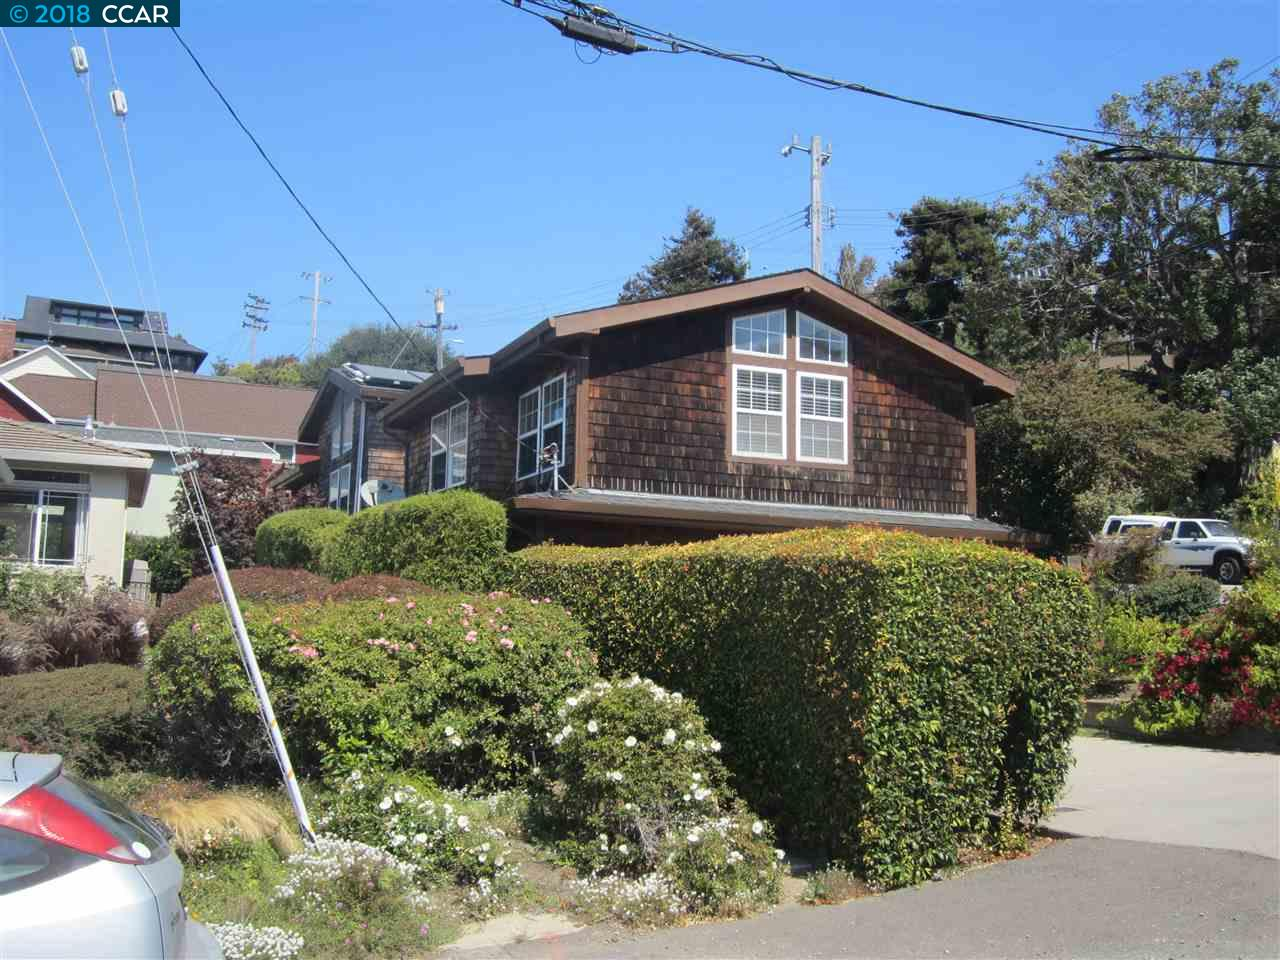 495 WESTERN DR, RICHMOND, CA 94801